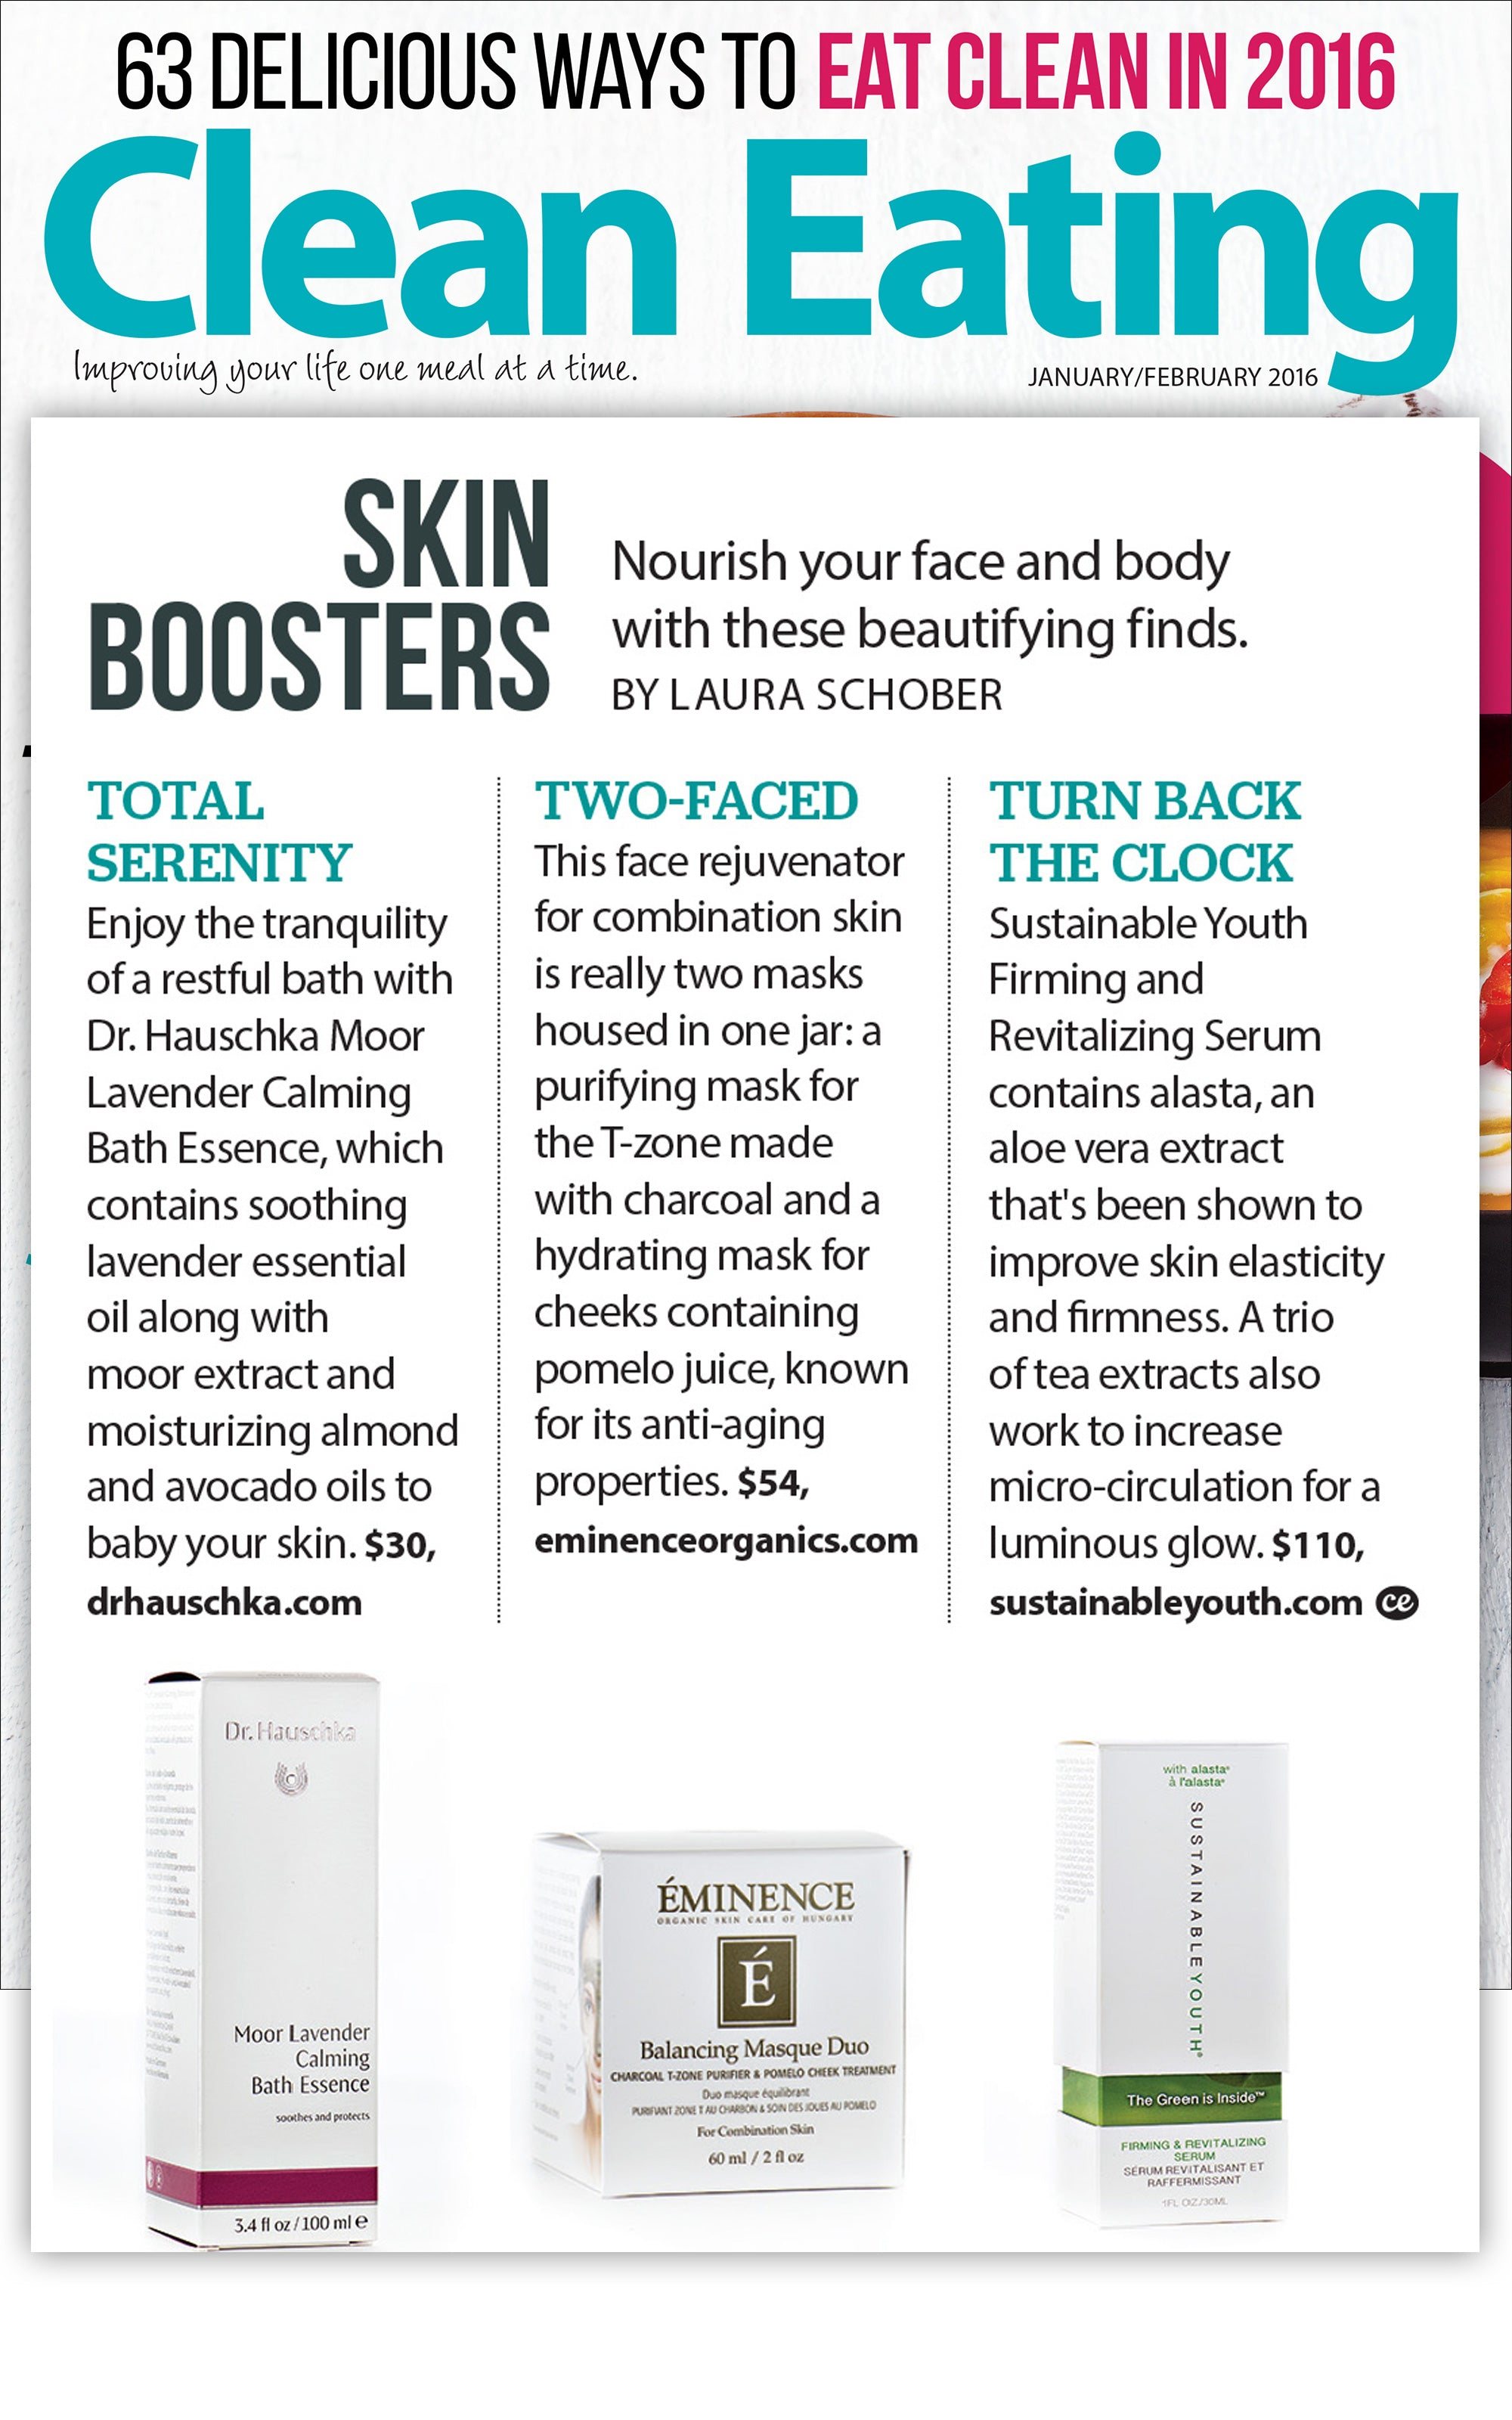 Sustainable Youth Firming & Revitalizing Serum featured in Cleaning Eating, Jan/Feb 2016